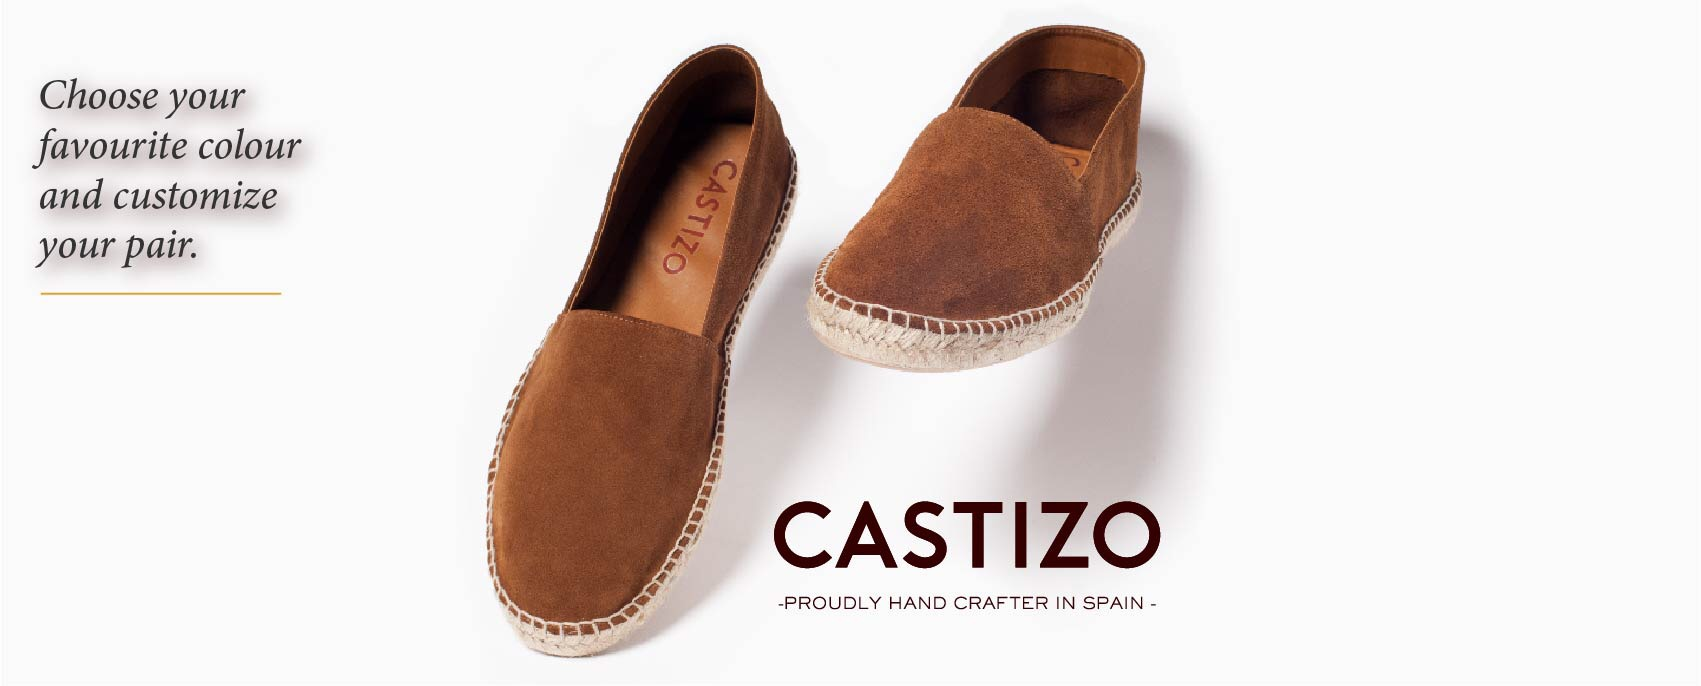 CASTIZO Handcrafted luxury espadrilles at attainable prices